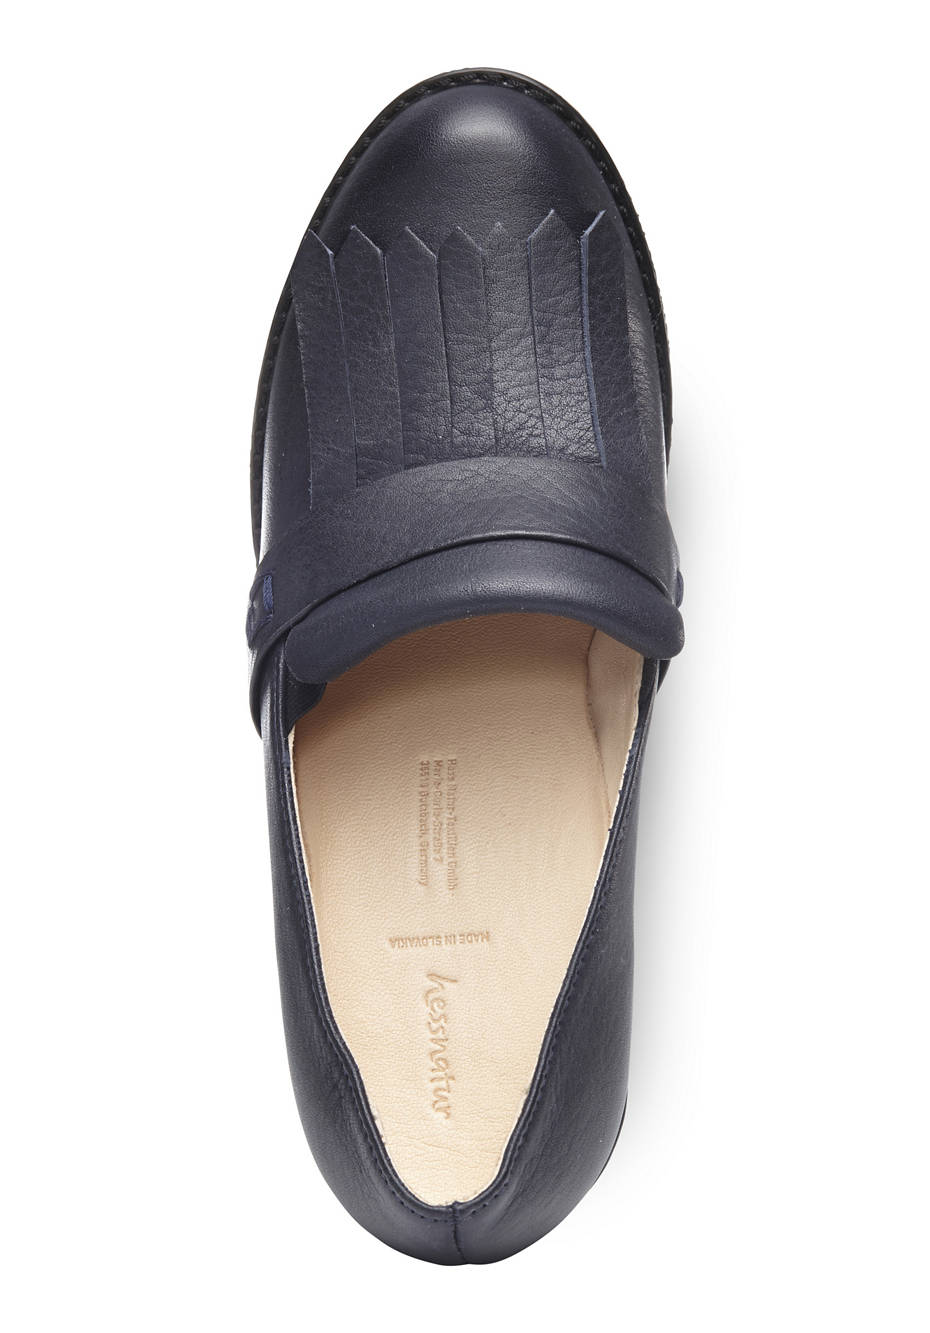 Damen Wedge-Slipper aus Leder